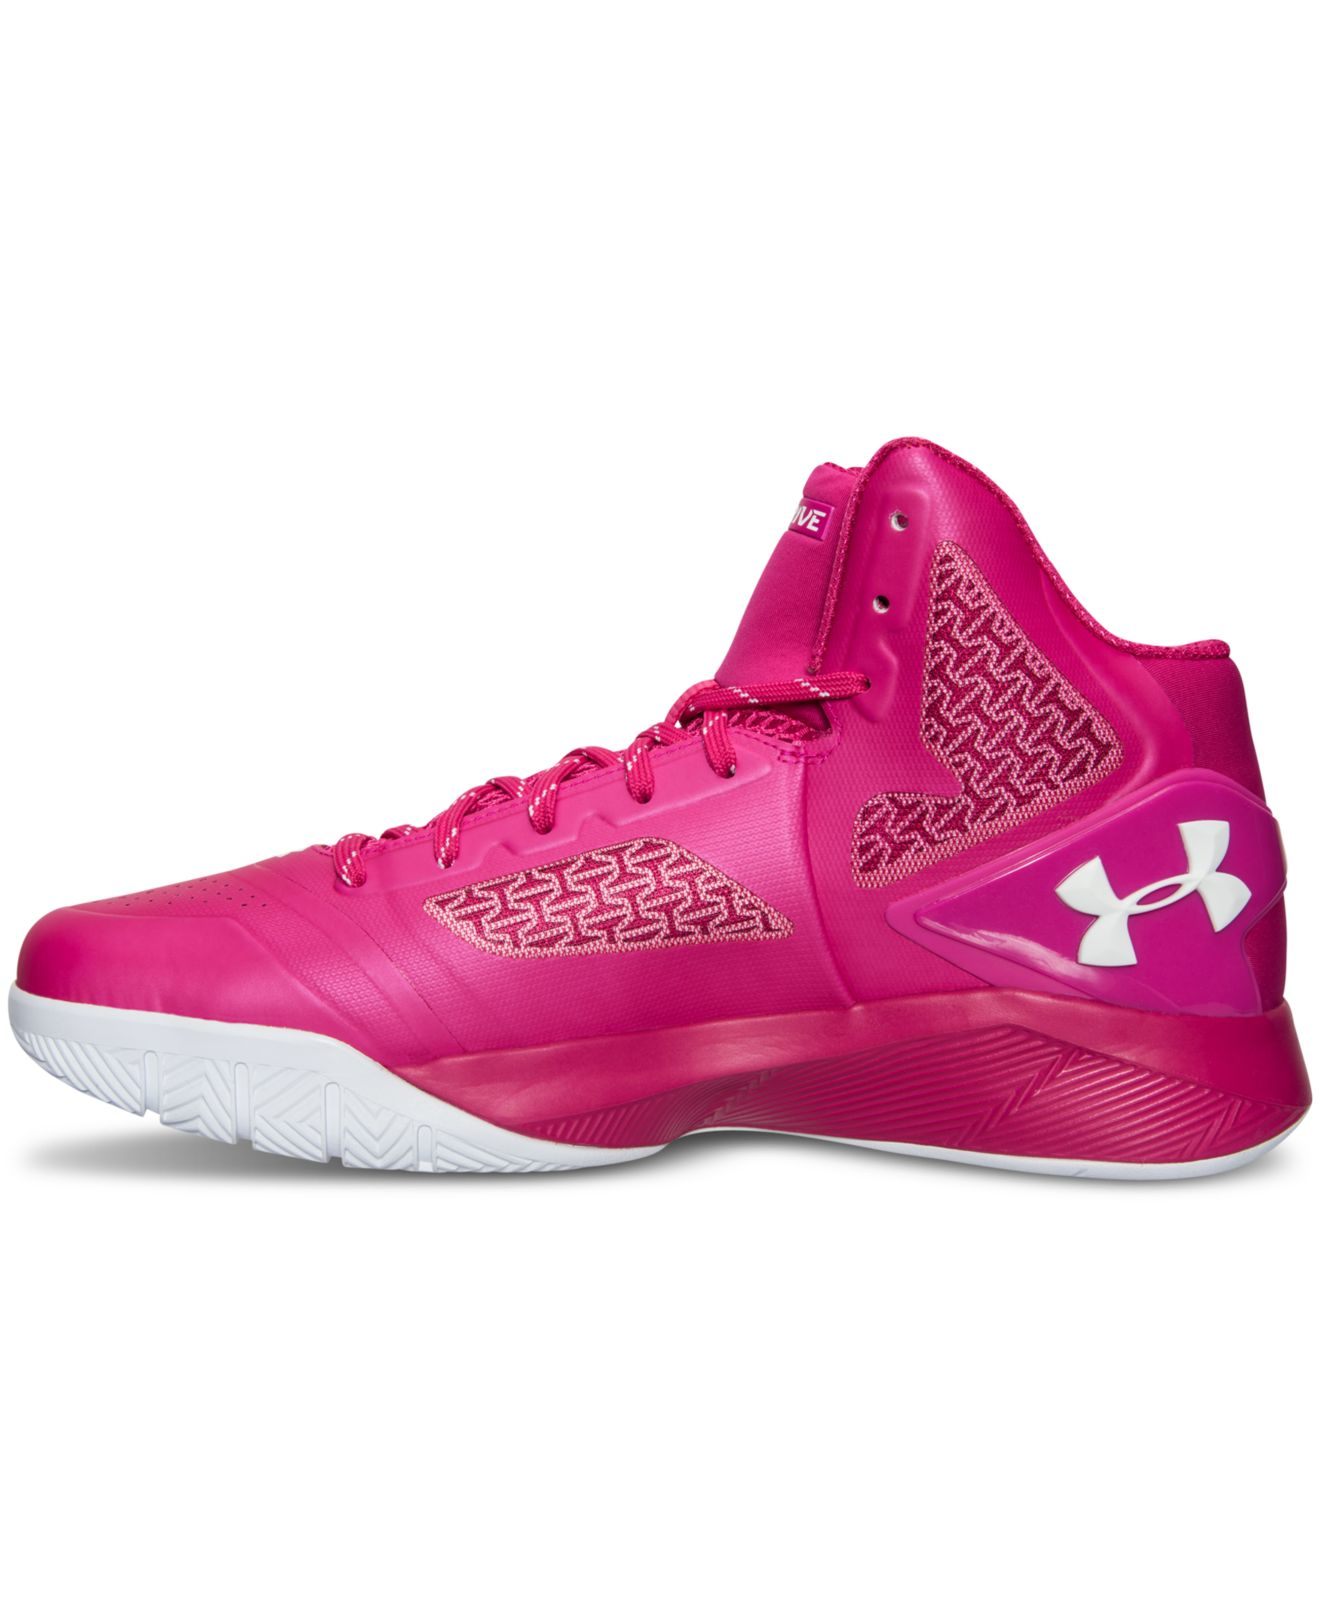 5f32a2390432 ... purchase lyst under armour mens clutchfit drive ii basketball sneakers  9b697 98788